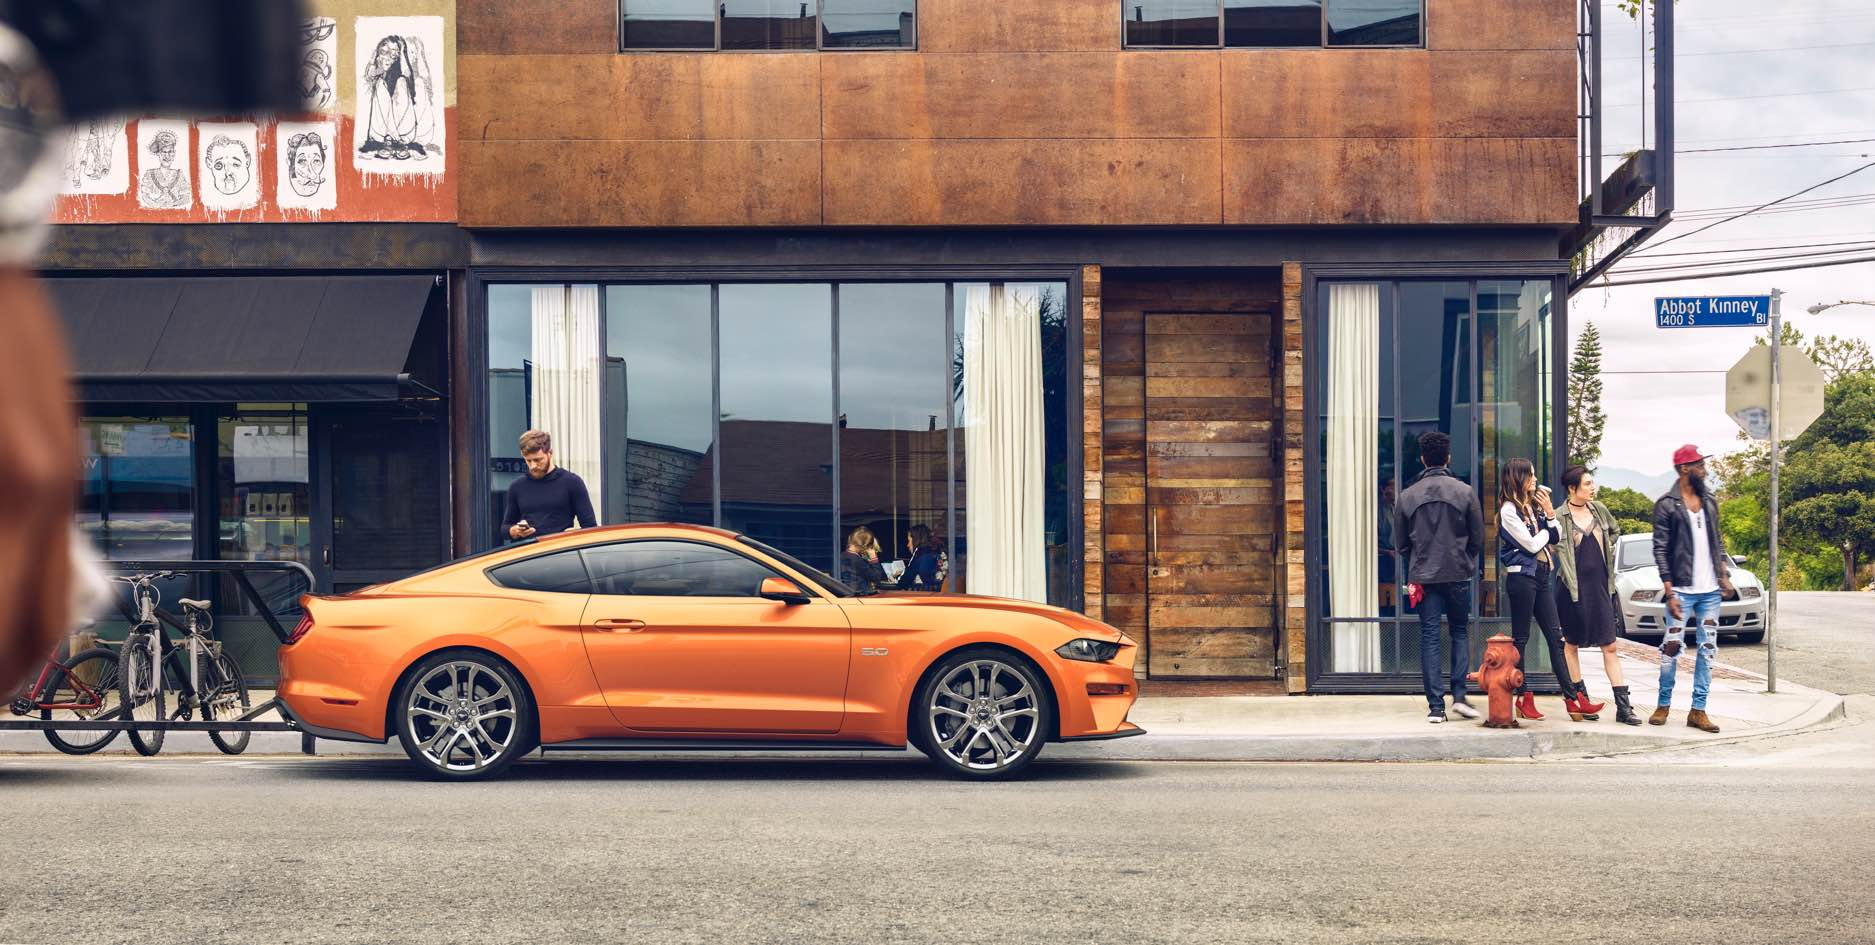 2018 Mustang Gallery 6 Santa Monica Ford Lincoln | New Ford dealership in Santa Monica, CA 90404